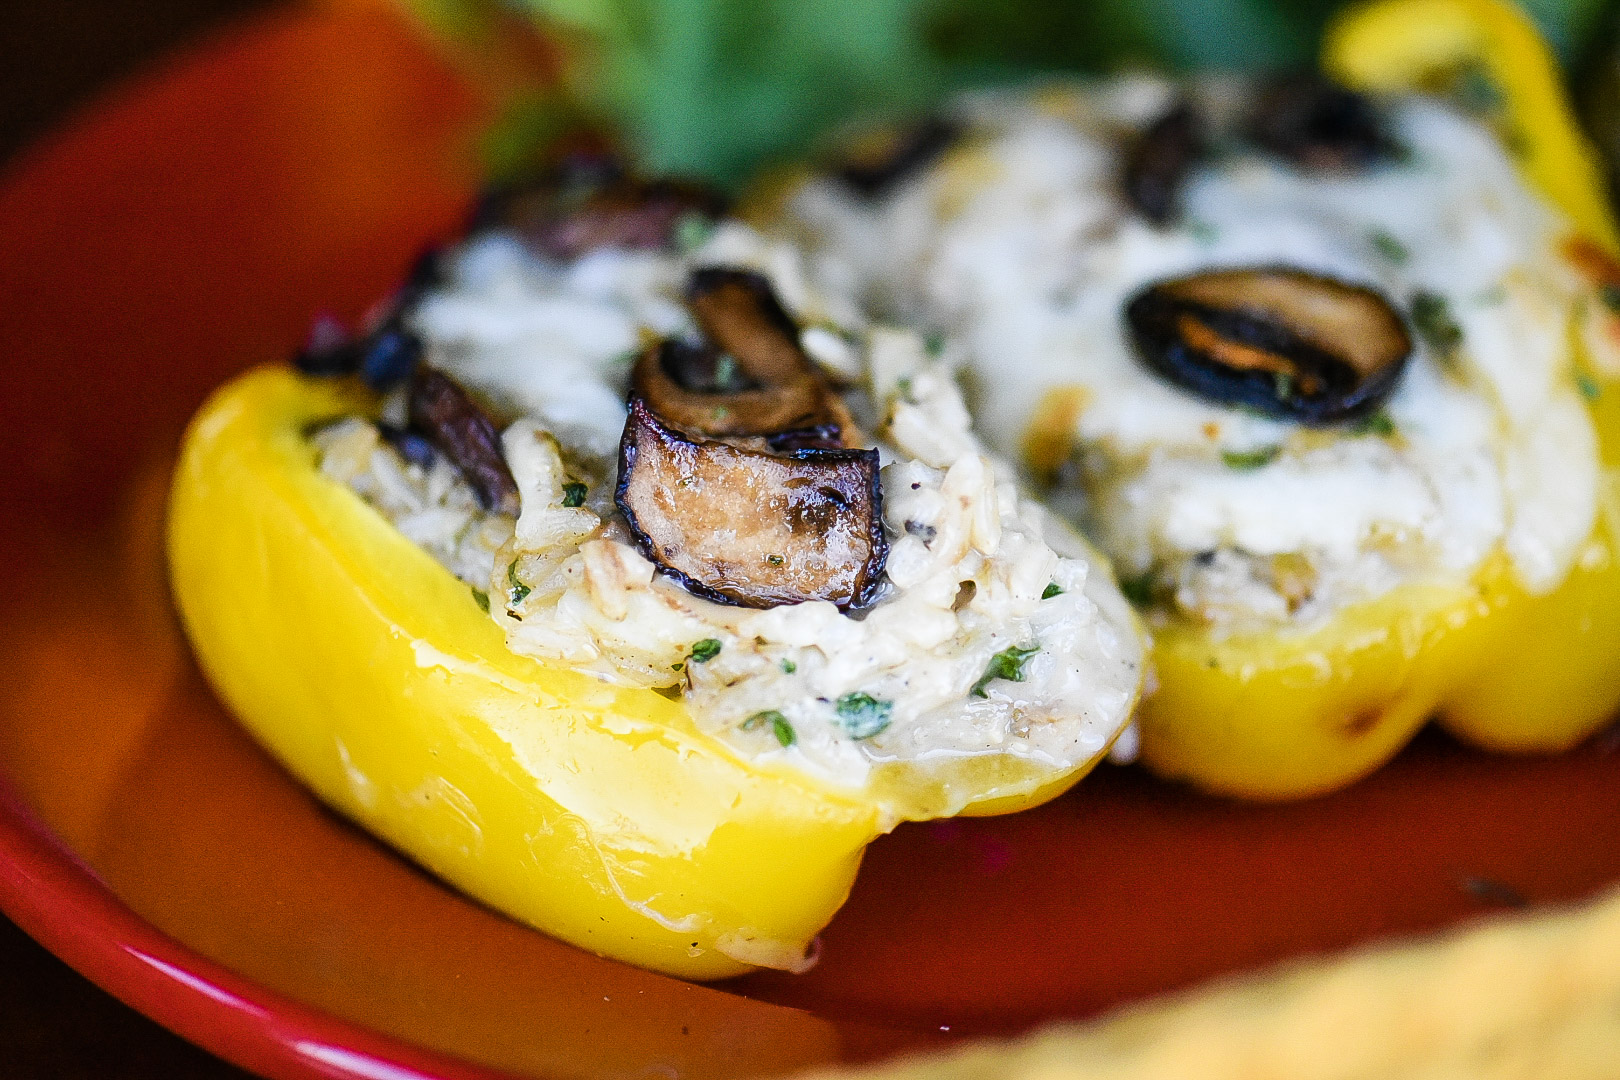 Creamy Rice and Mushroom Stuffed Bell Peppers